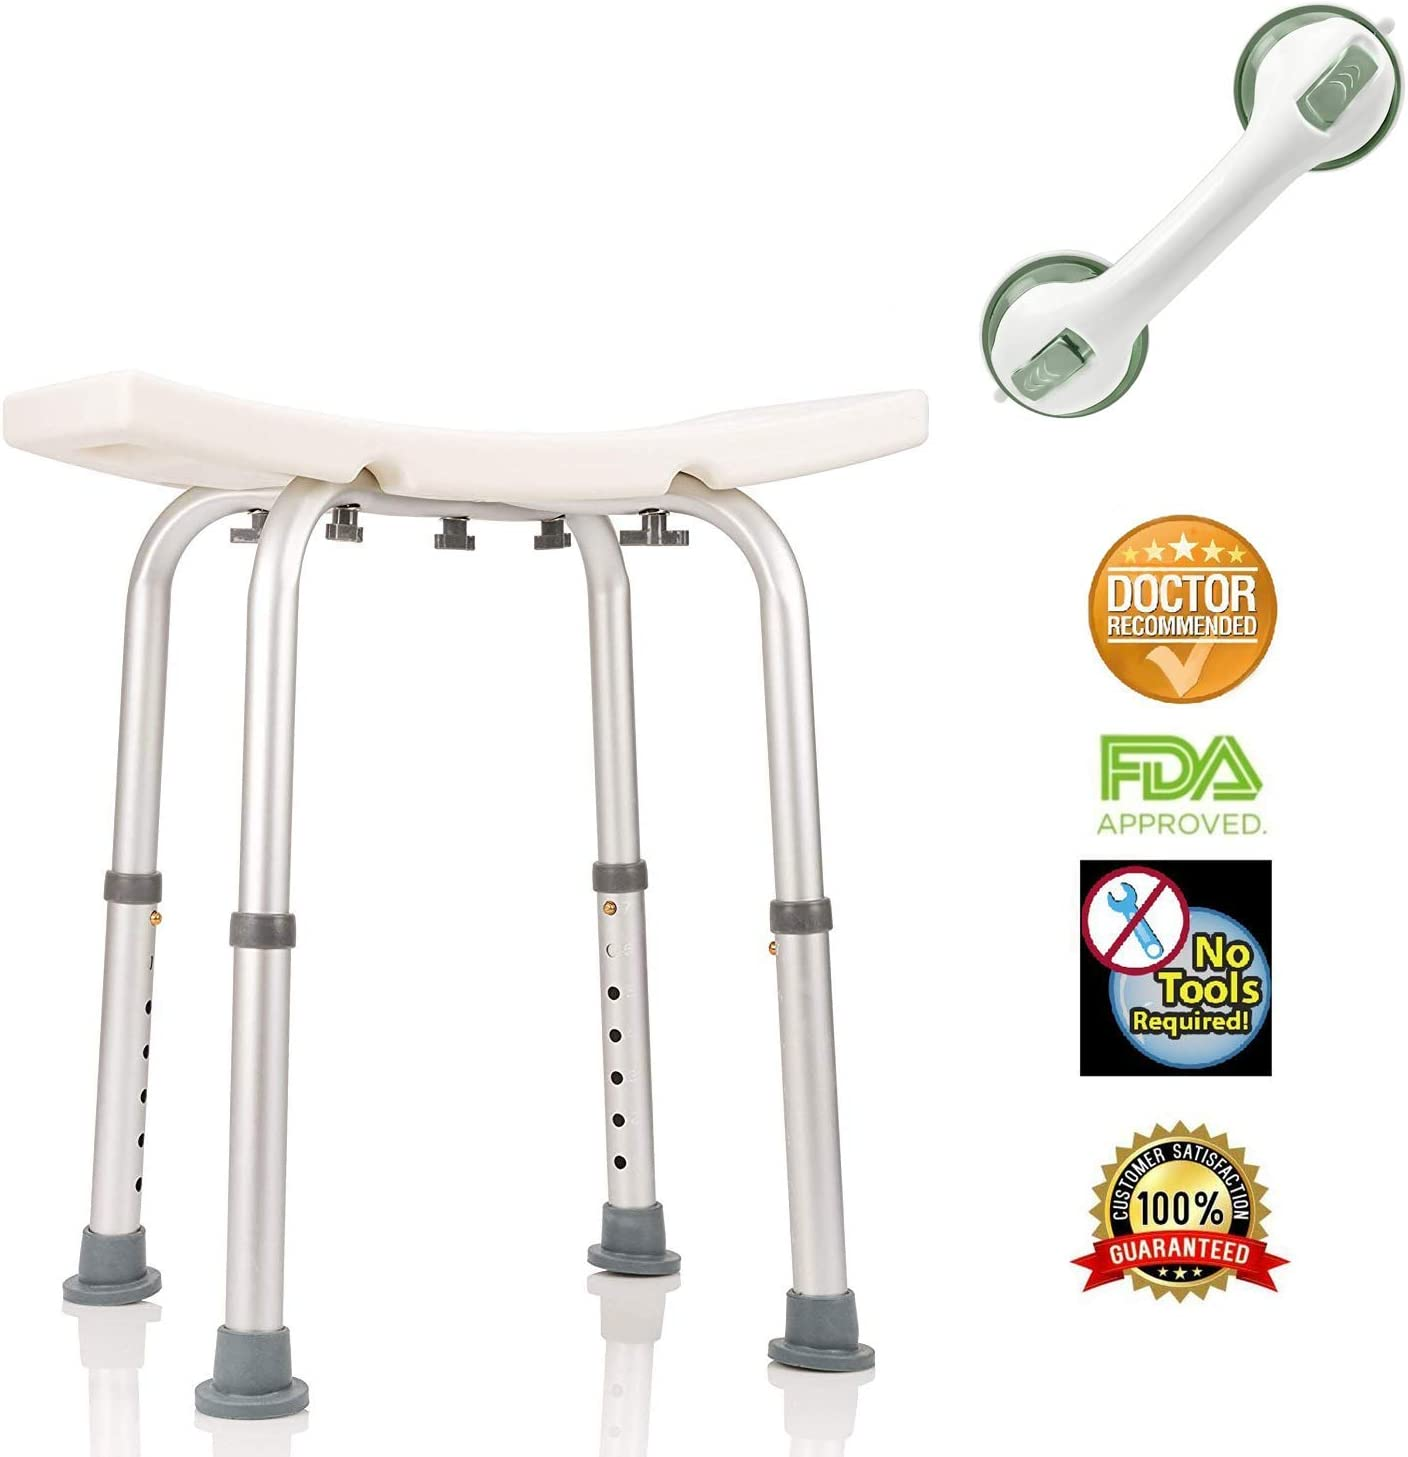 Healthline Shower Chair for Bathtub, Compact Shower Stool Lightweight Bath Tub Bench Chair with Non-Slip Seat & Free Suction Assist Shower Handle, Medical Adjustable Shower Chair for Elderly, White